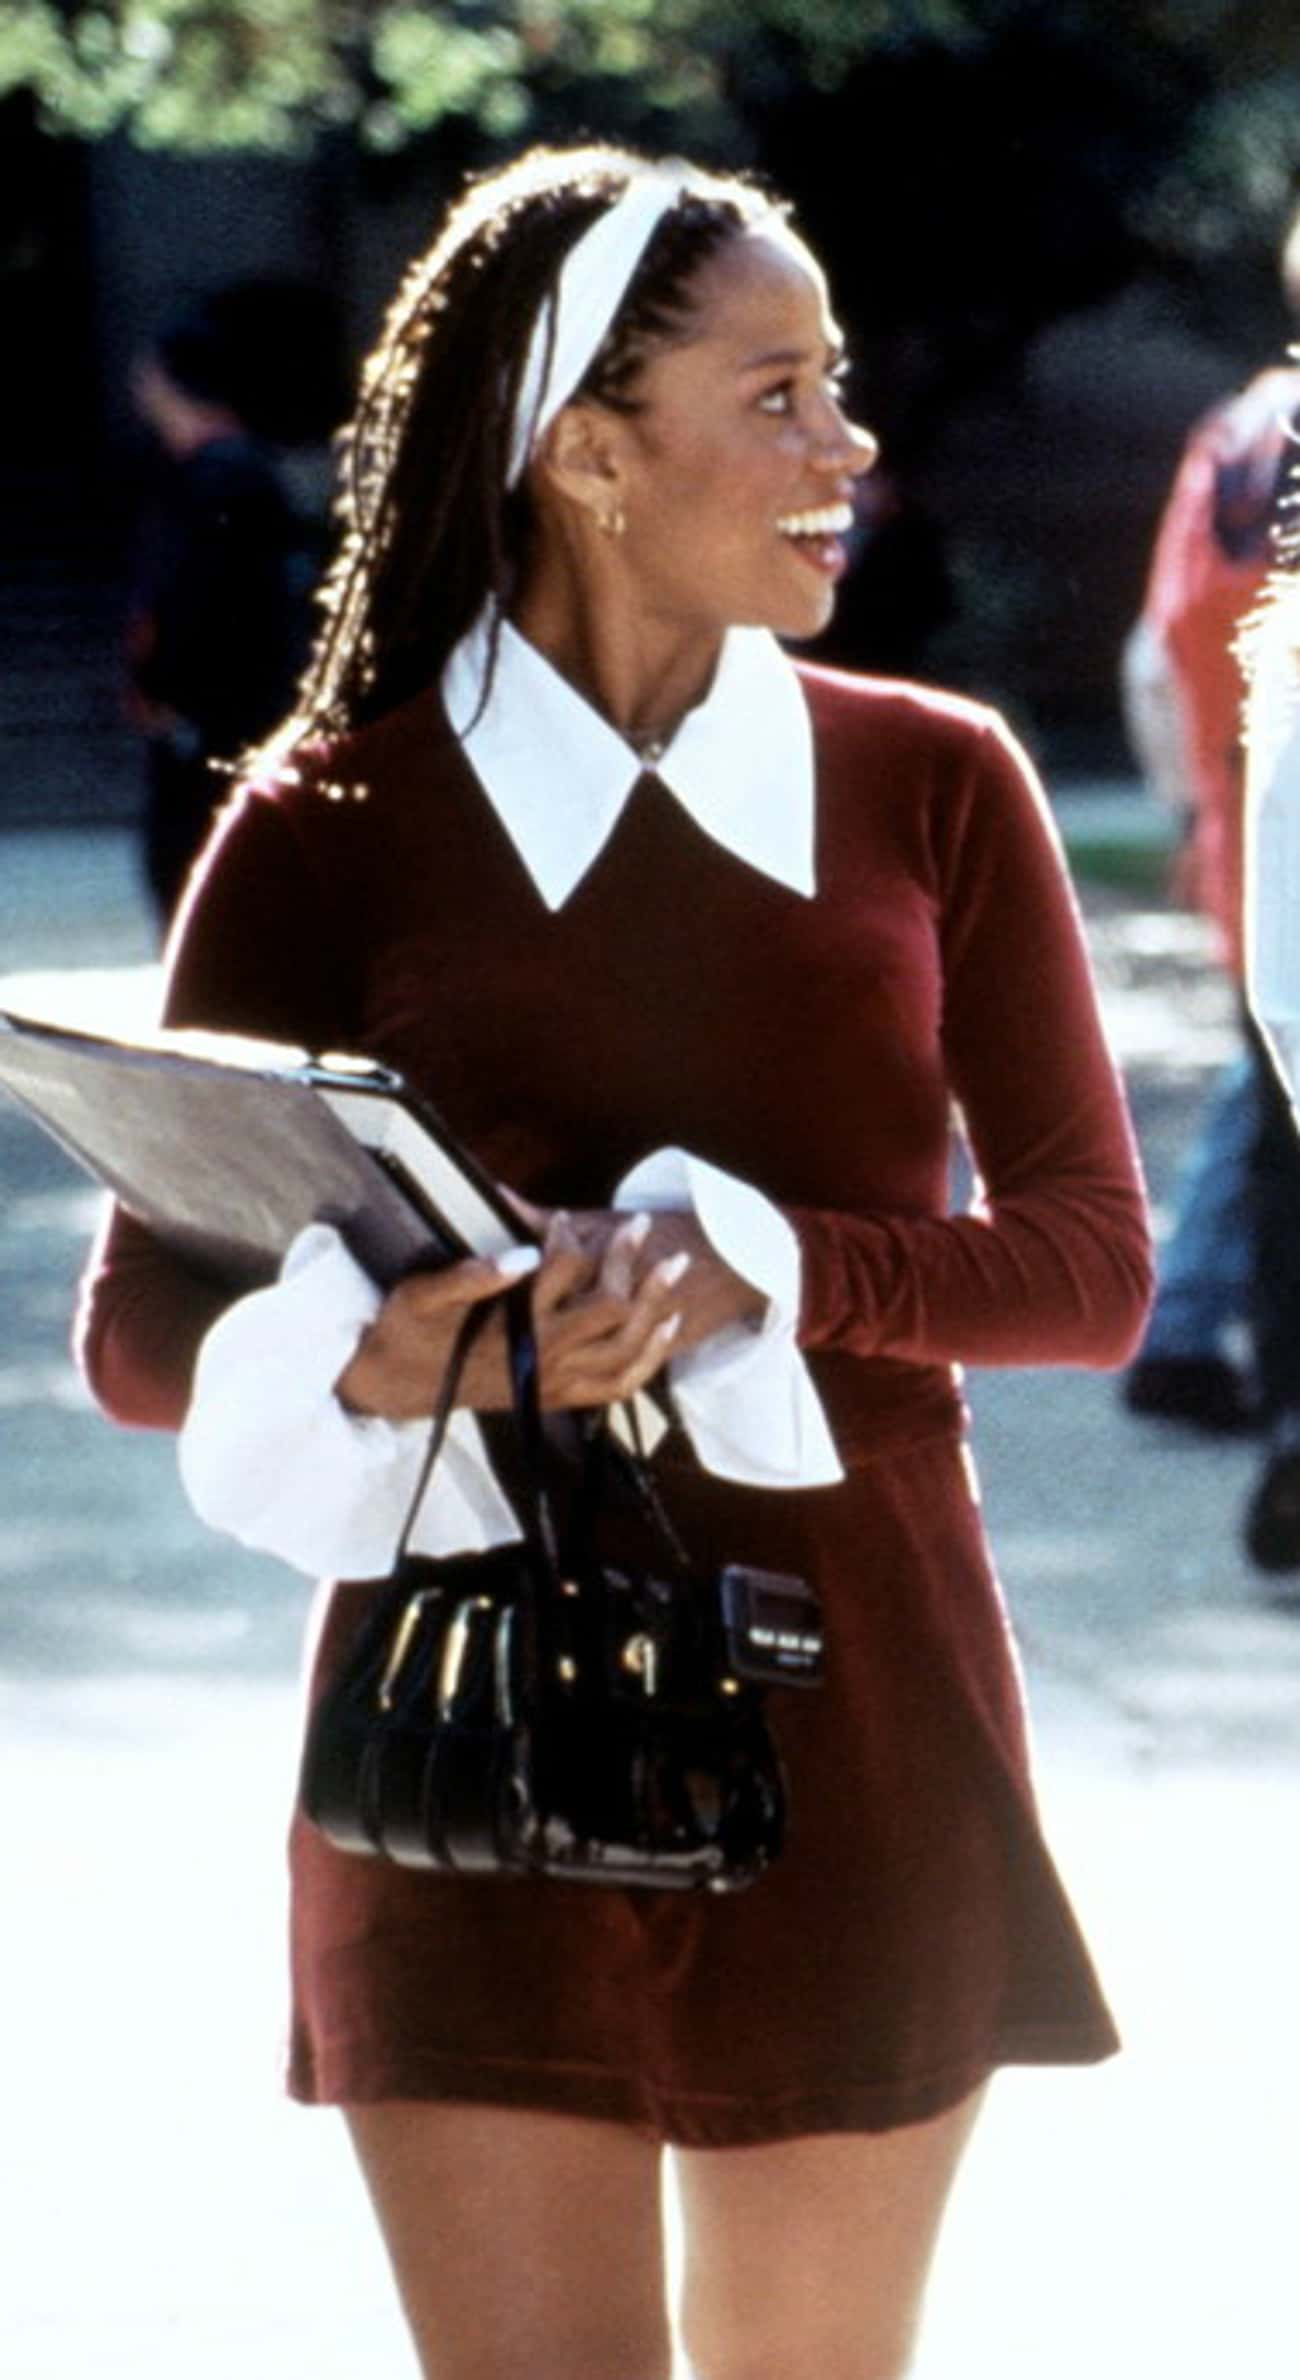 Maroon Crushed Velvet is listed (or ranked) 4 on the list The Best Outfits from Clueless